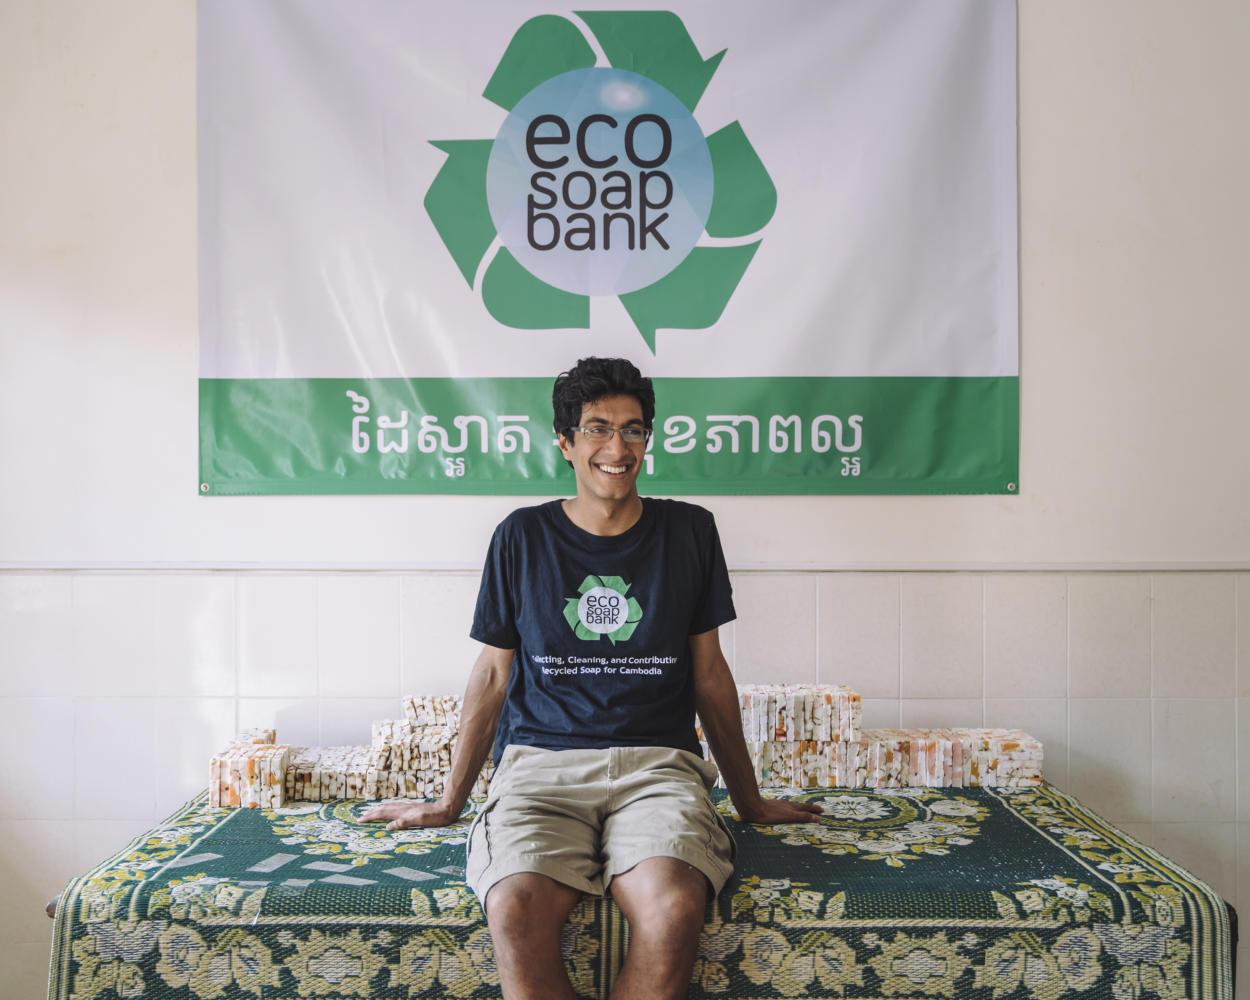 Pitt alum Samir Lakhani founded the nonprofit organization, Eco-Soap Bank during his senior year at Pitt in 2014. (Photo courtesy of Samir Lakhani)